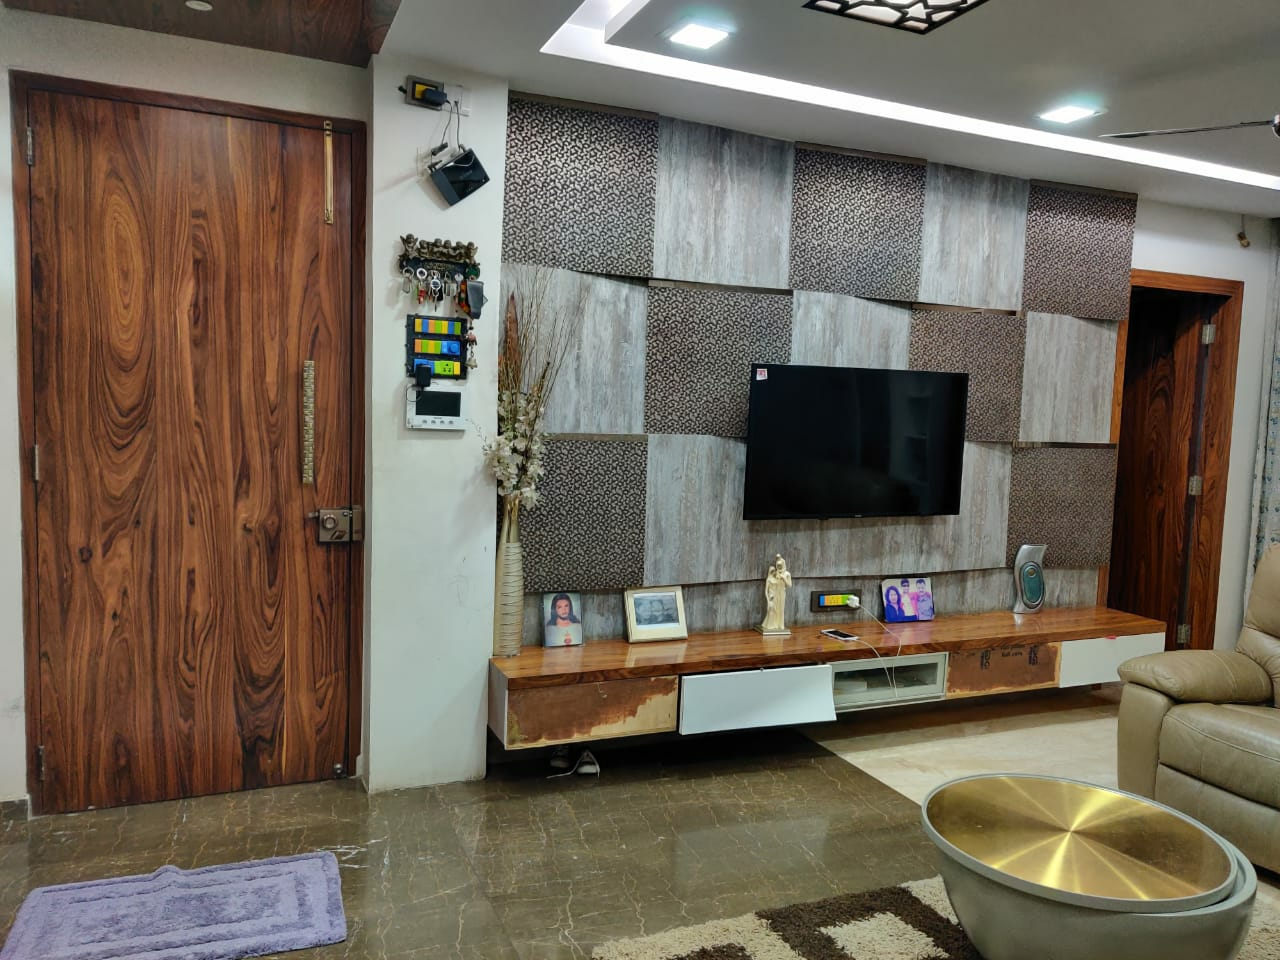 1240 Sq Feet 3 Bhk Flat In Lavinia At 2 Crores For Sale Id 6223 Thane Mumbai